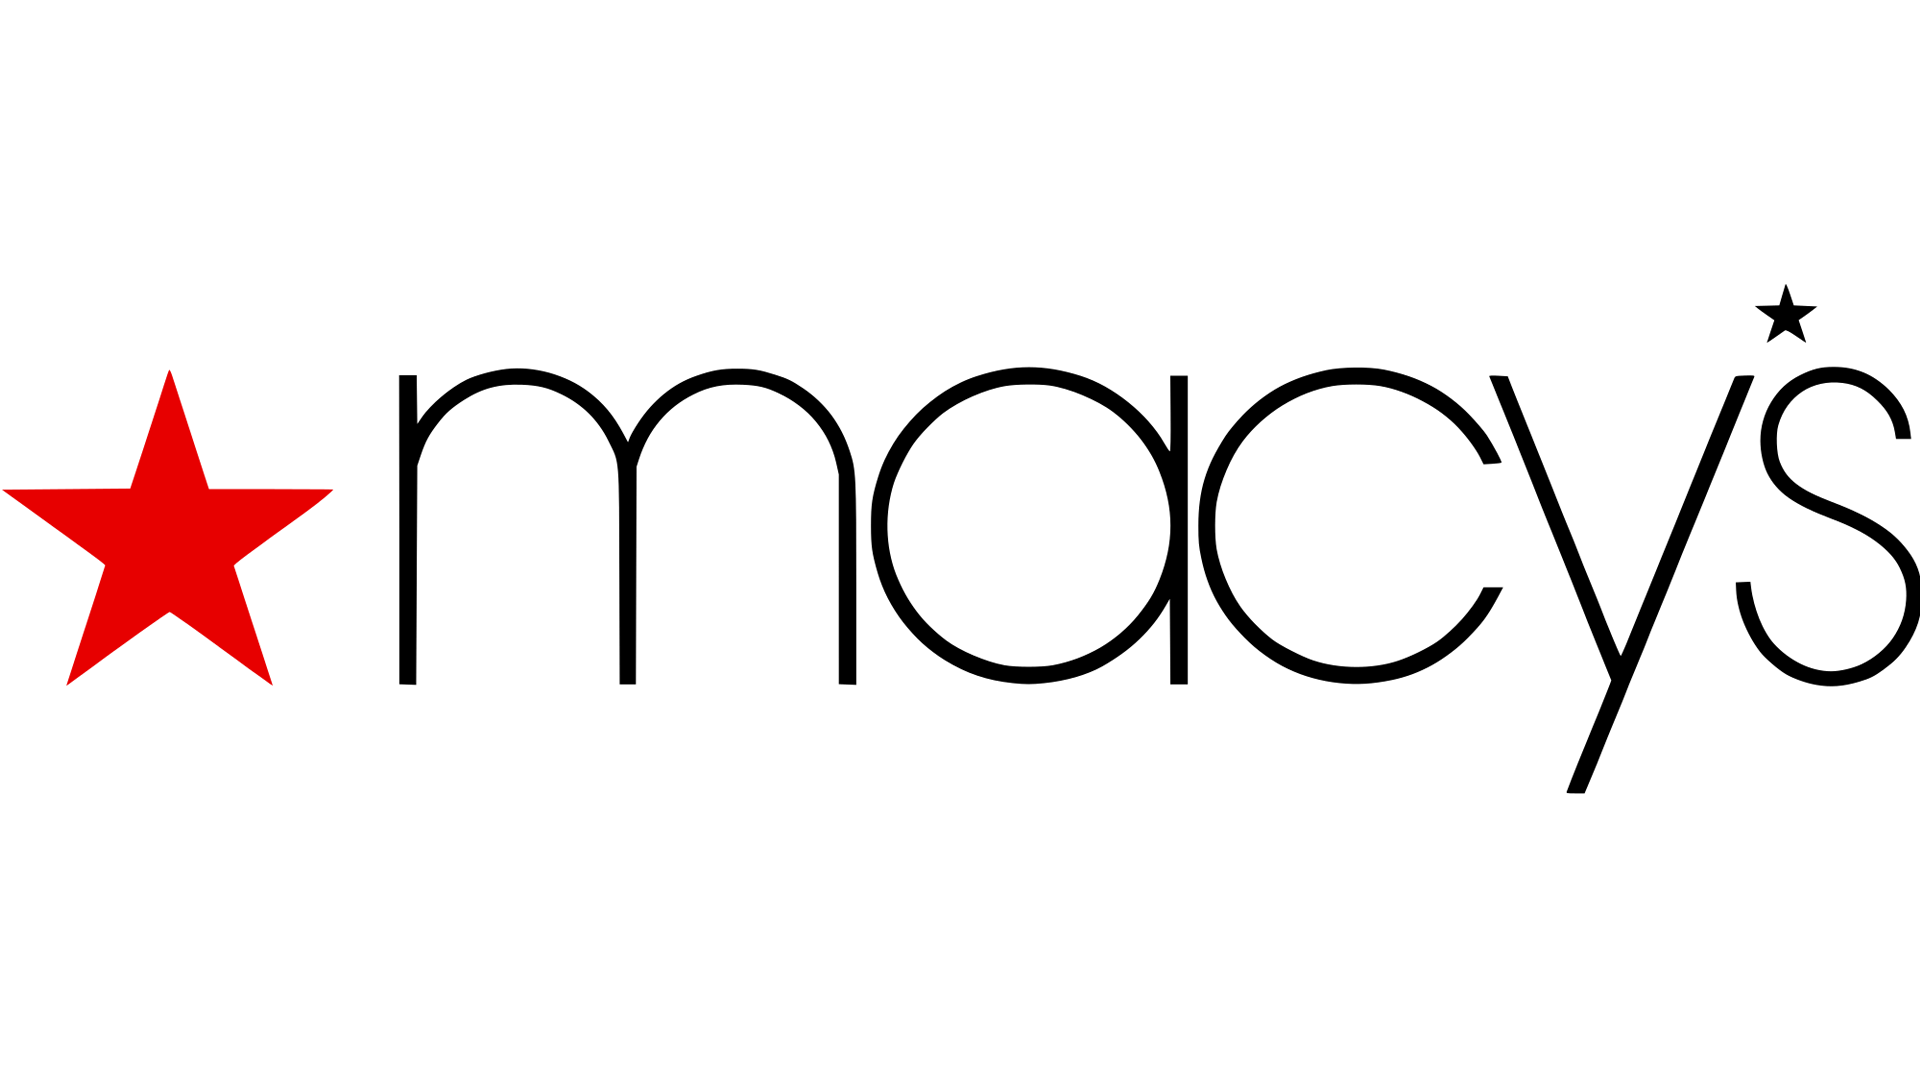 Meaning Macys Logo And Symbol